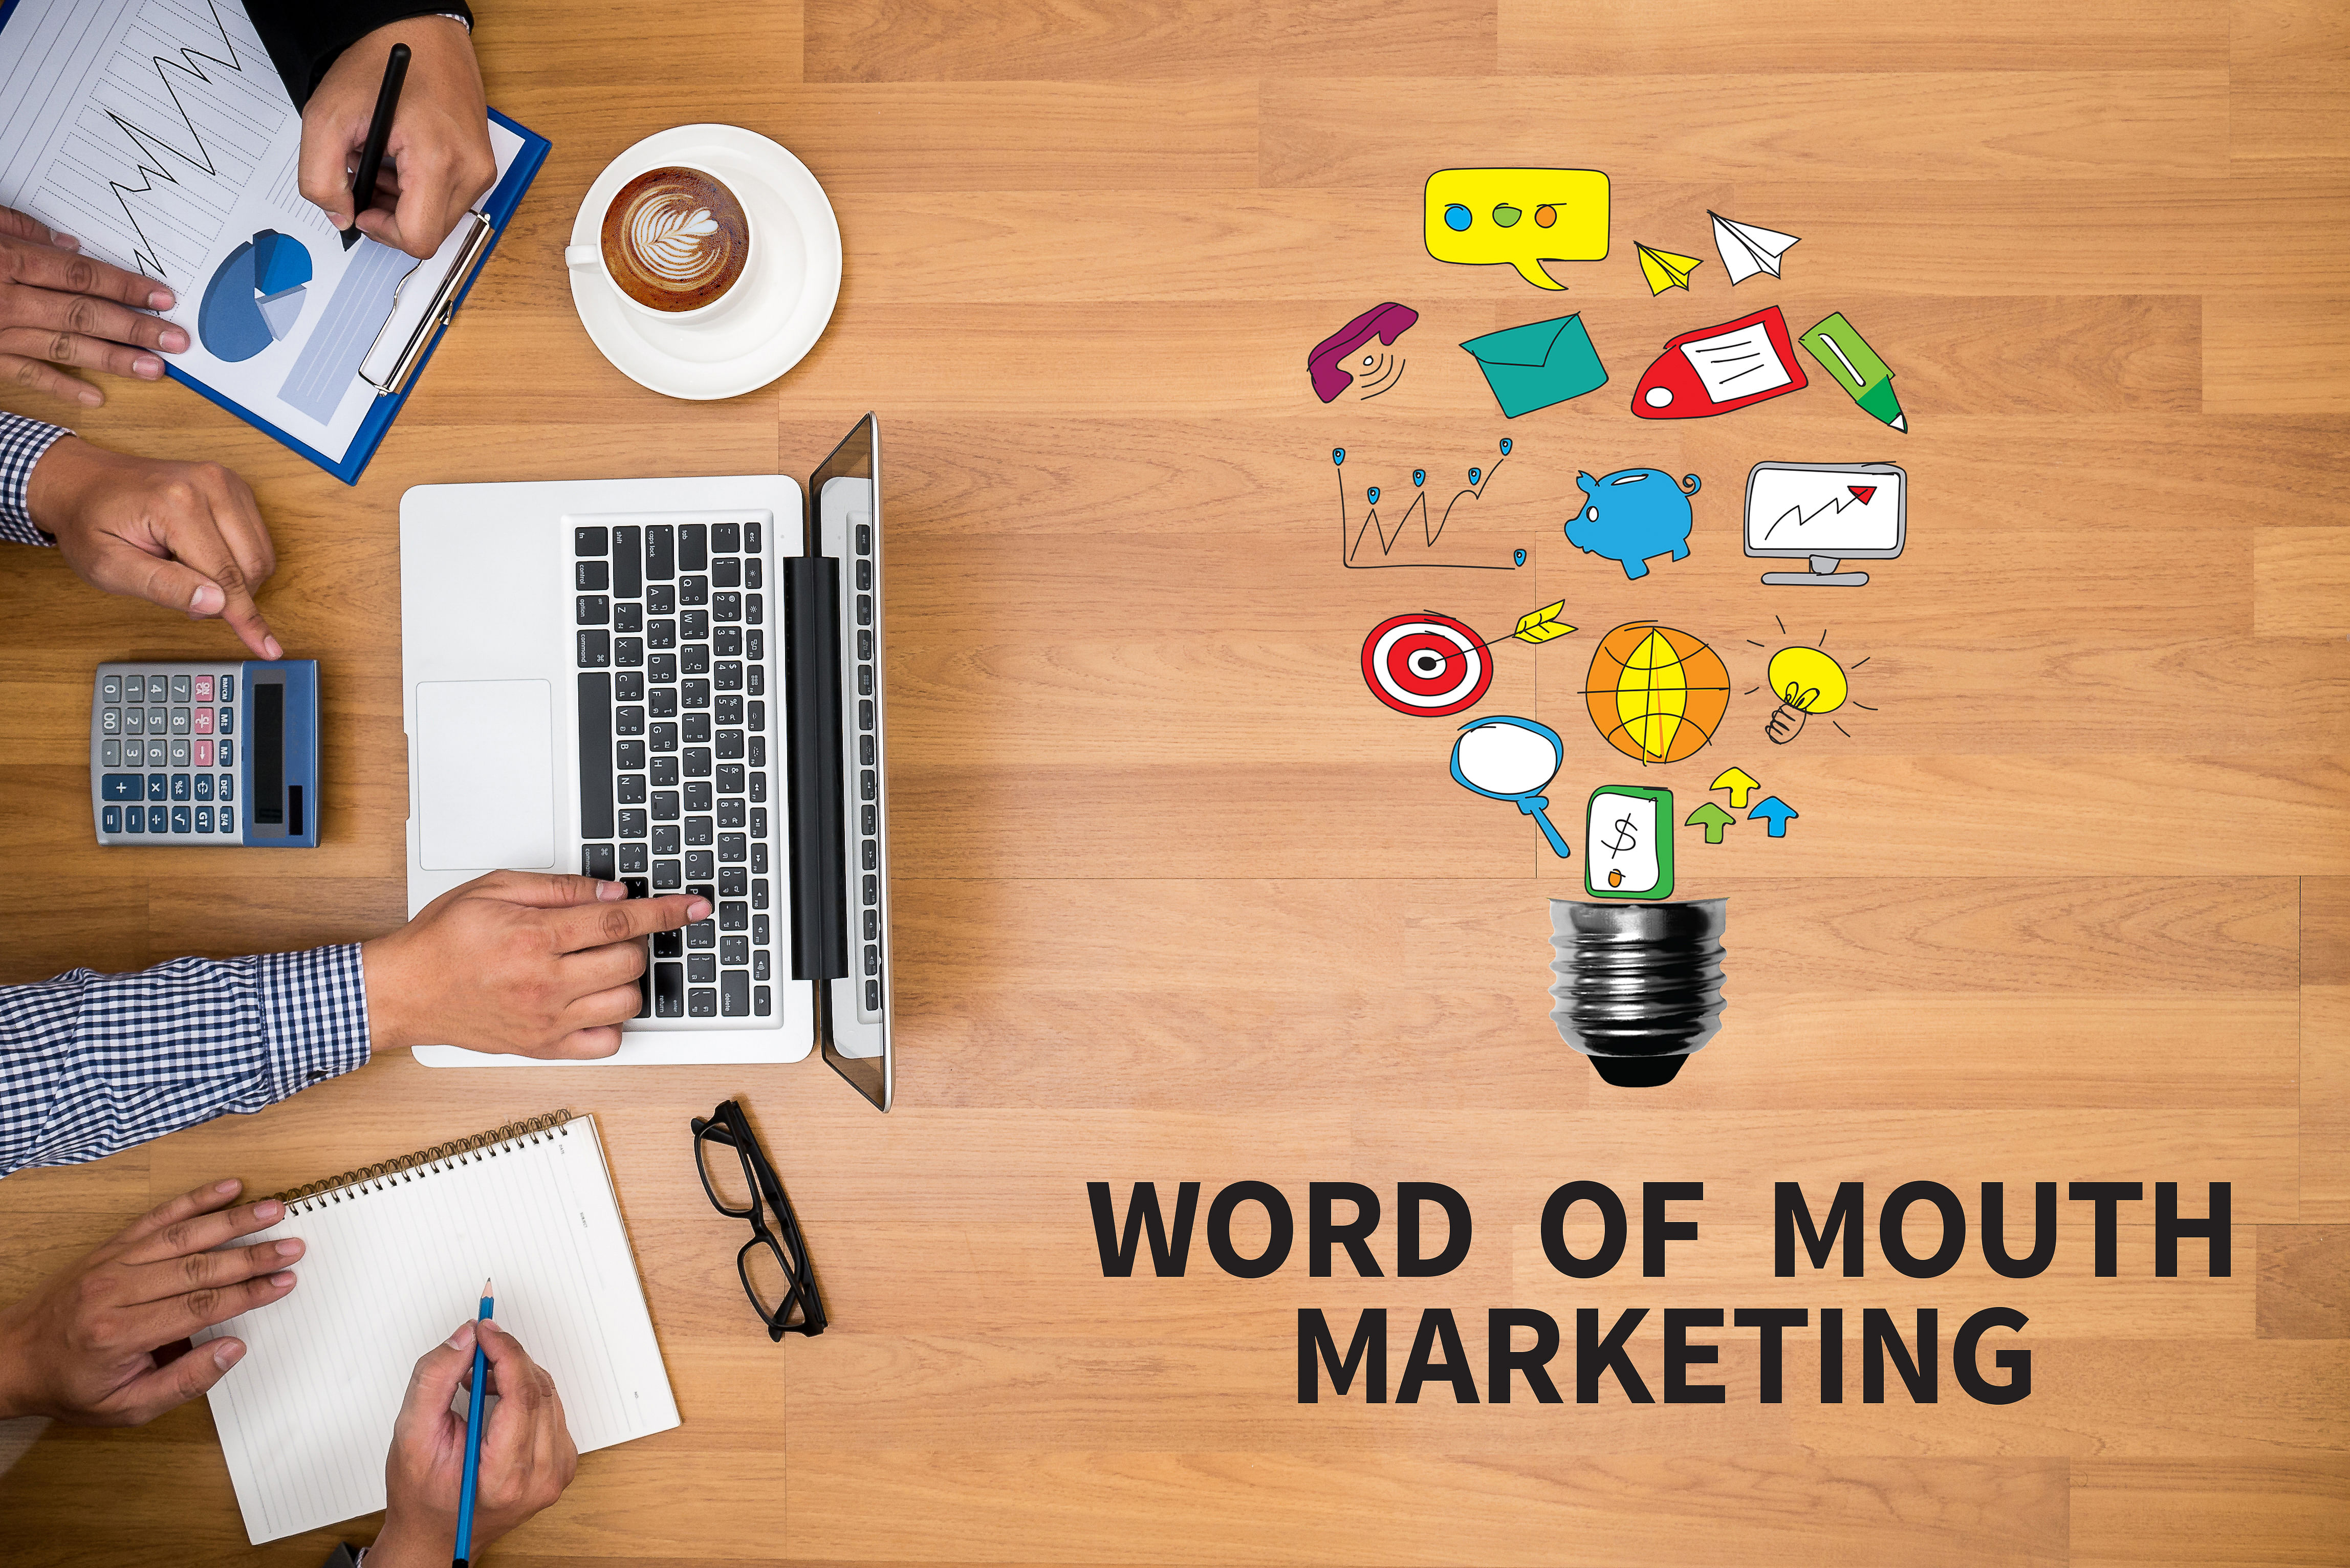 Importance of case studies for an effective word of mouth